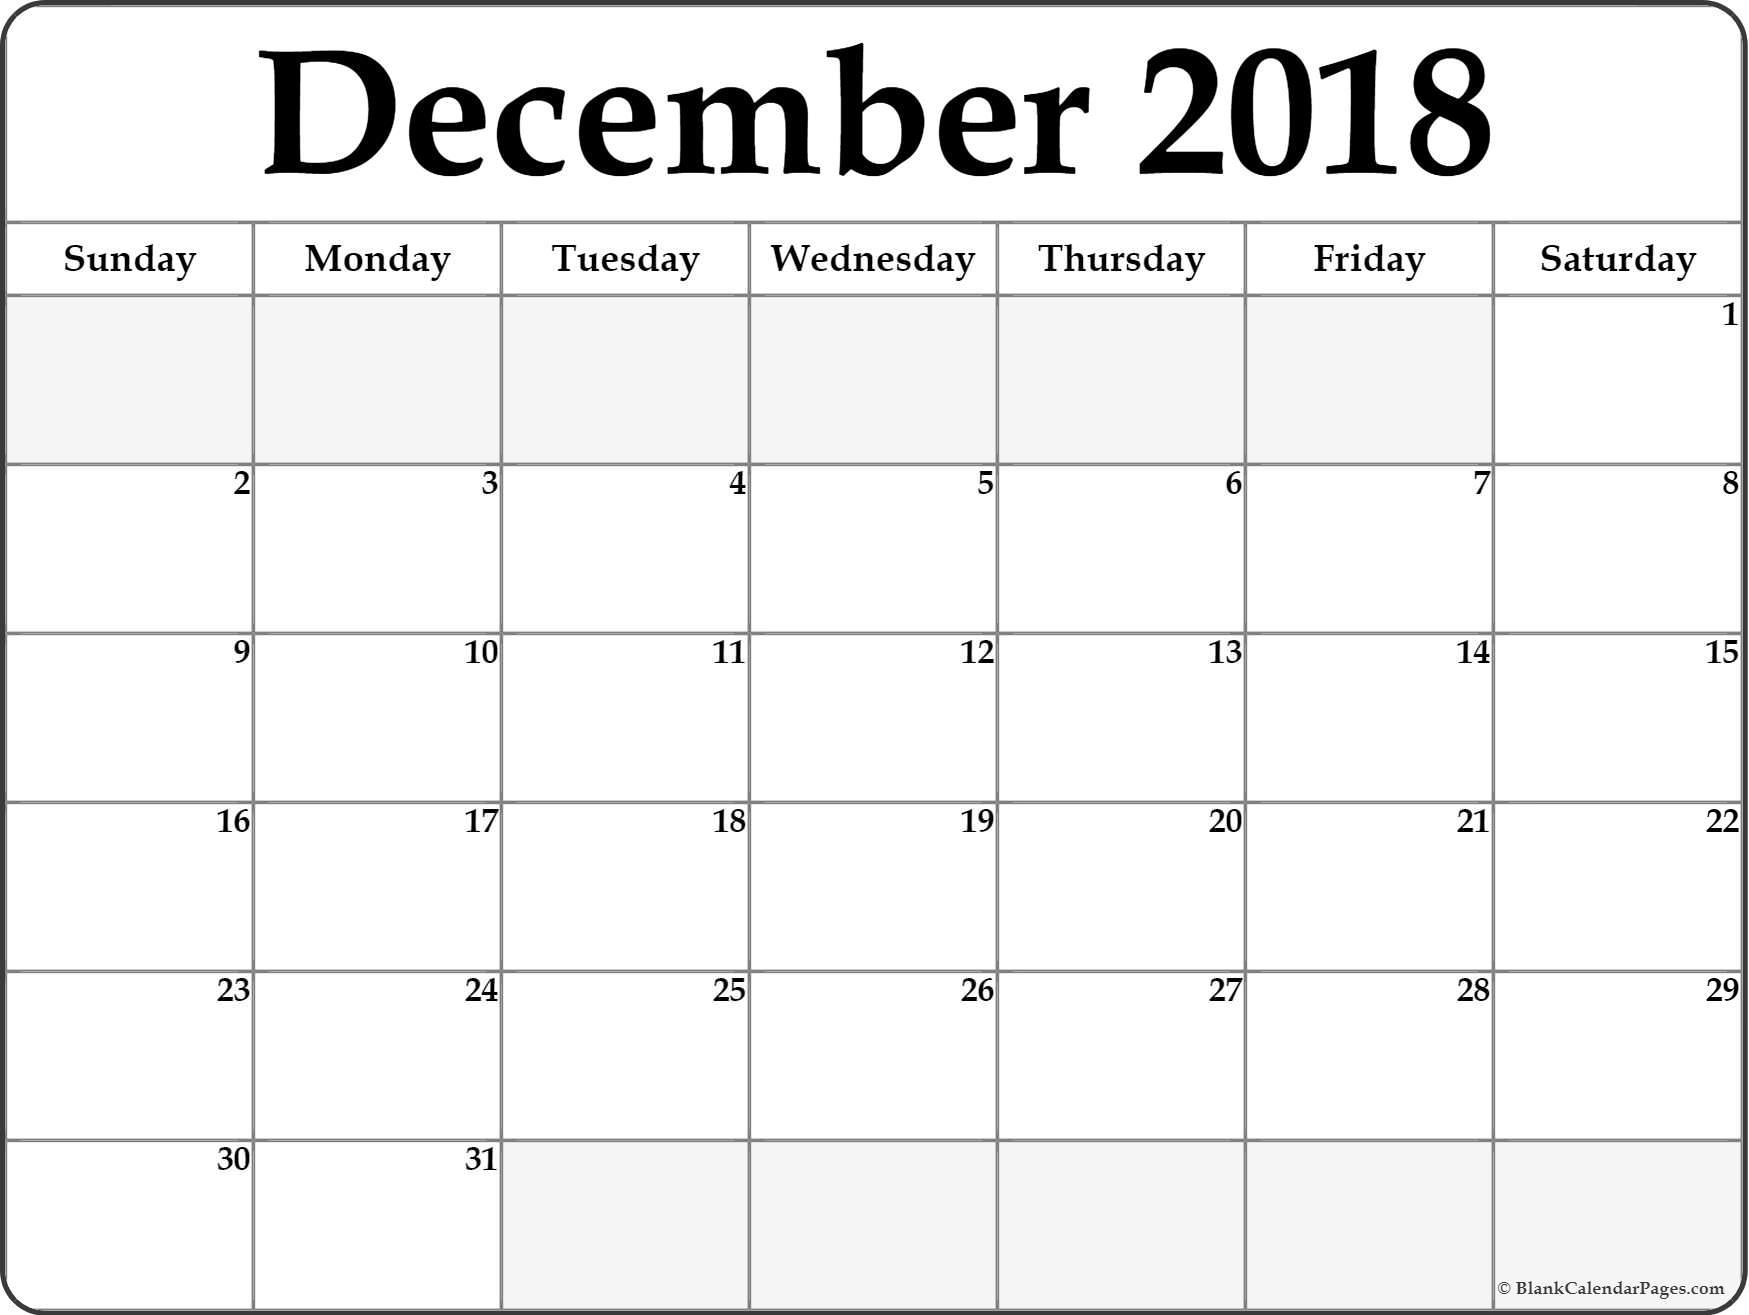 photograph regarding Printable December Calendar identified as December 2018 Calendar Printable- Absolutely free Templates - Printable